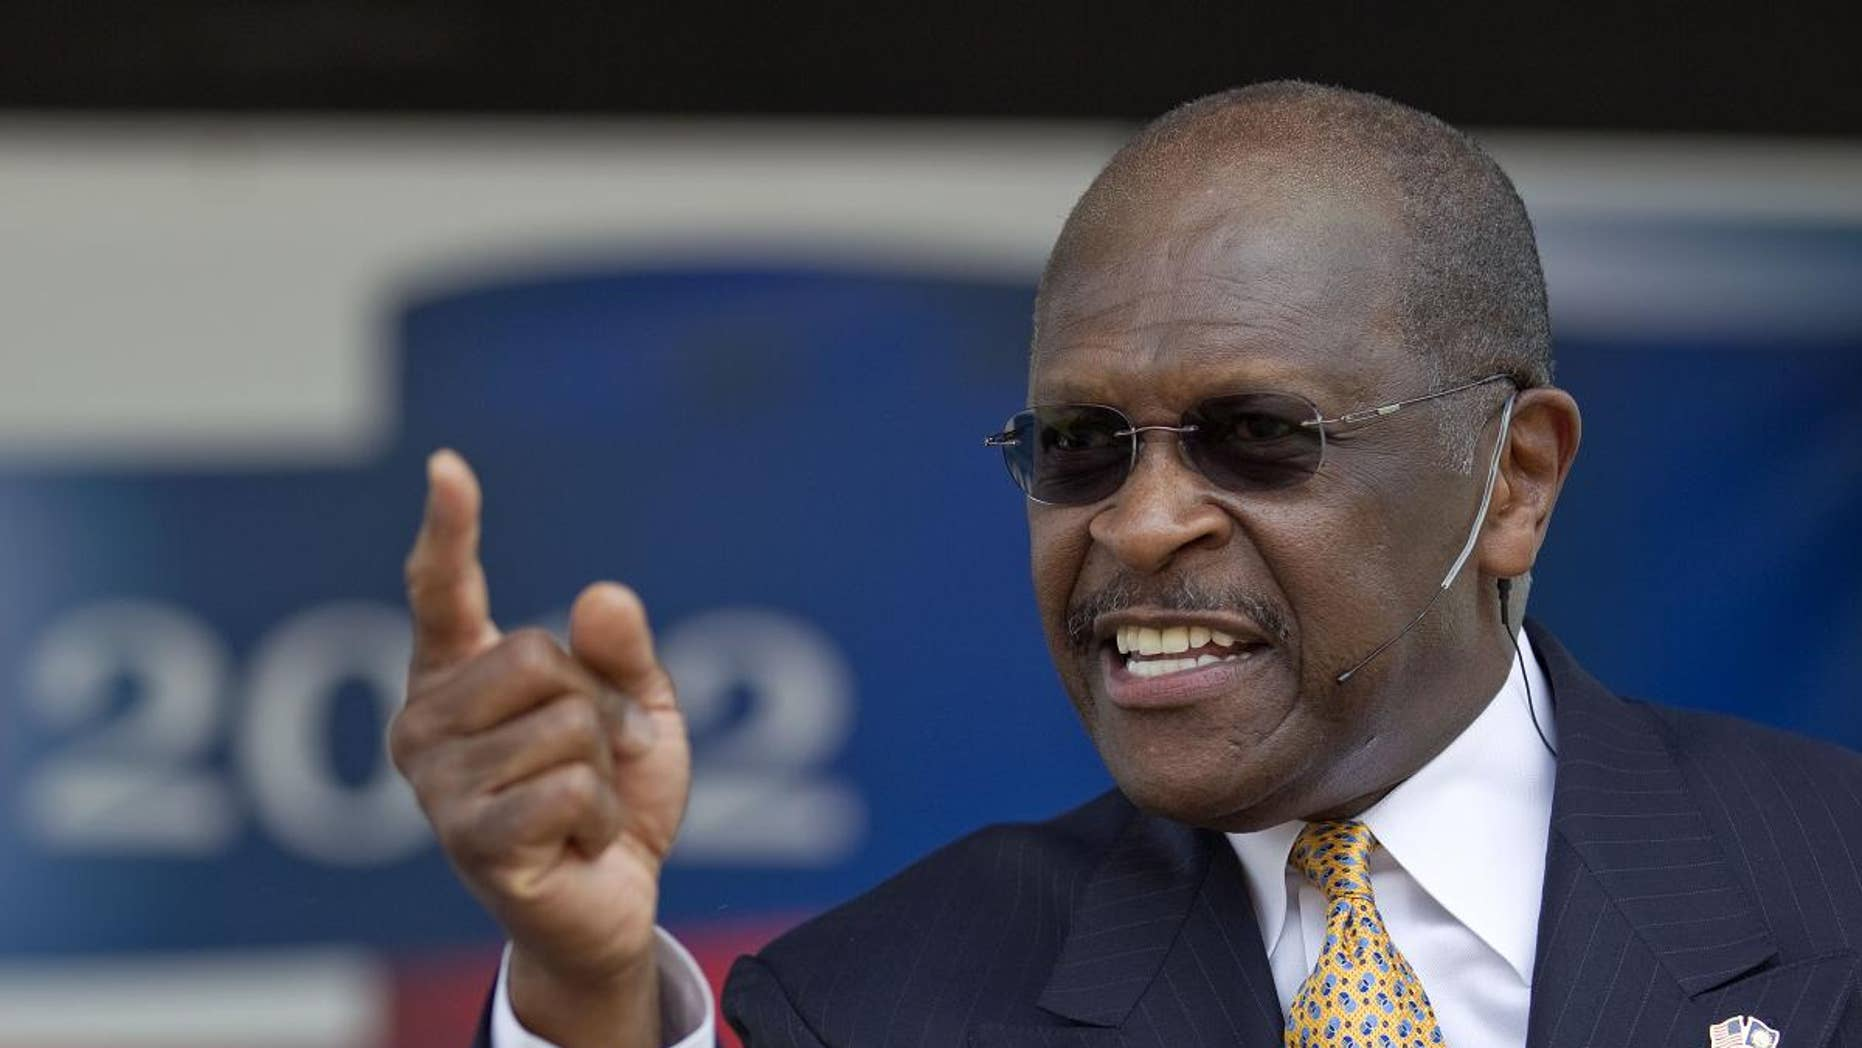 Herman Cain announces his run for Republican candidate for president at a rally Saturday, May 21 in Atlanta. (AP Photo/David Goldman)